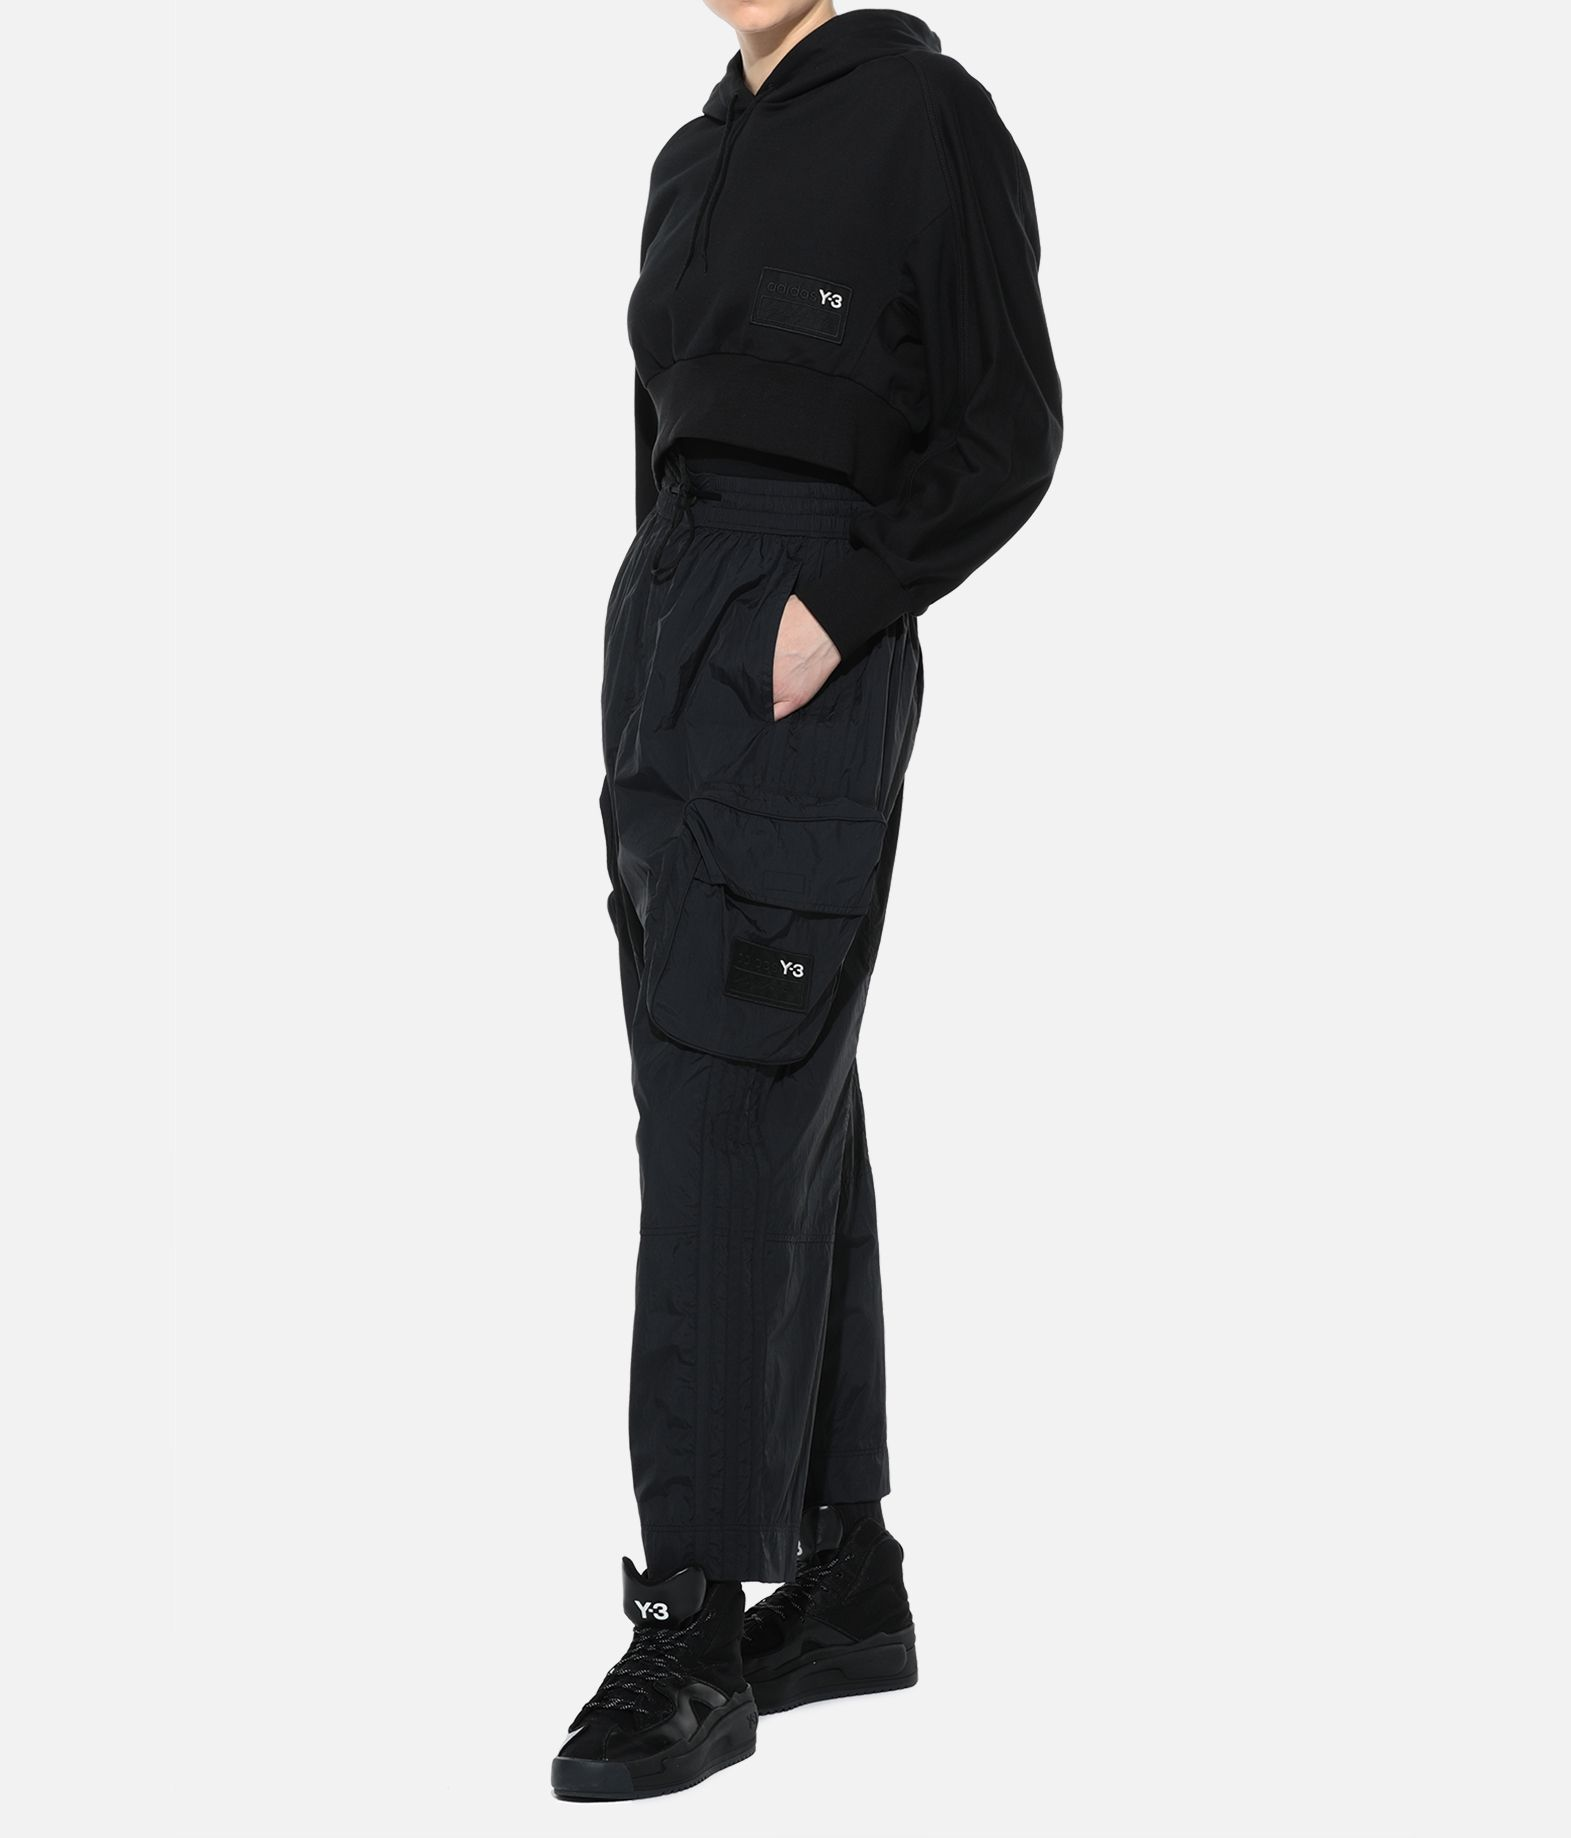 Y-3 Y-3 Stacked Badge Cropped Hoodie Hooded sweatshirt Woman a